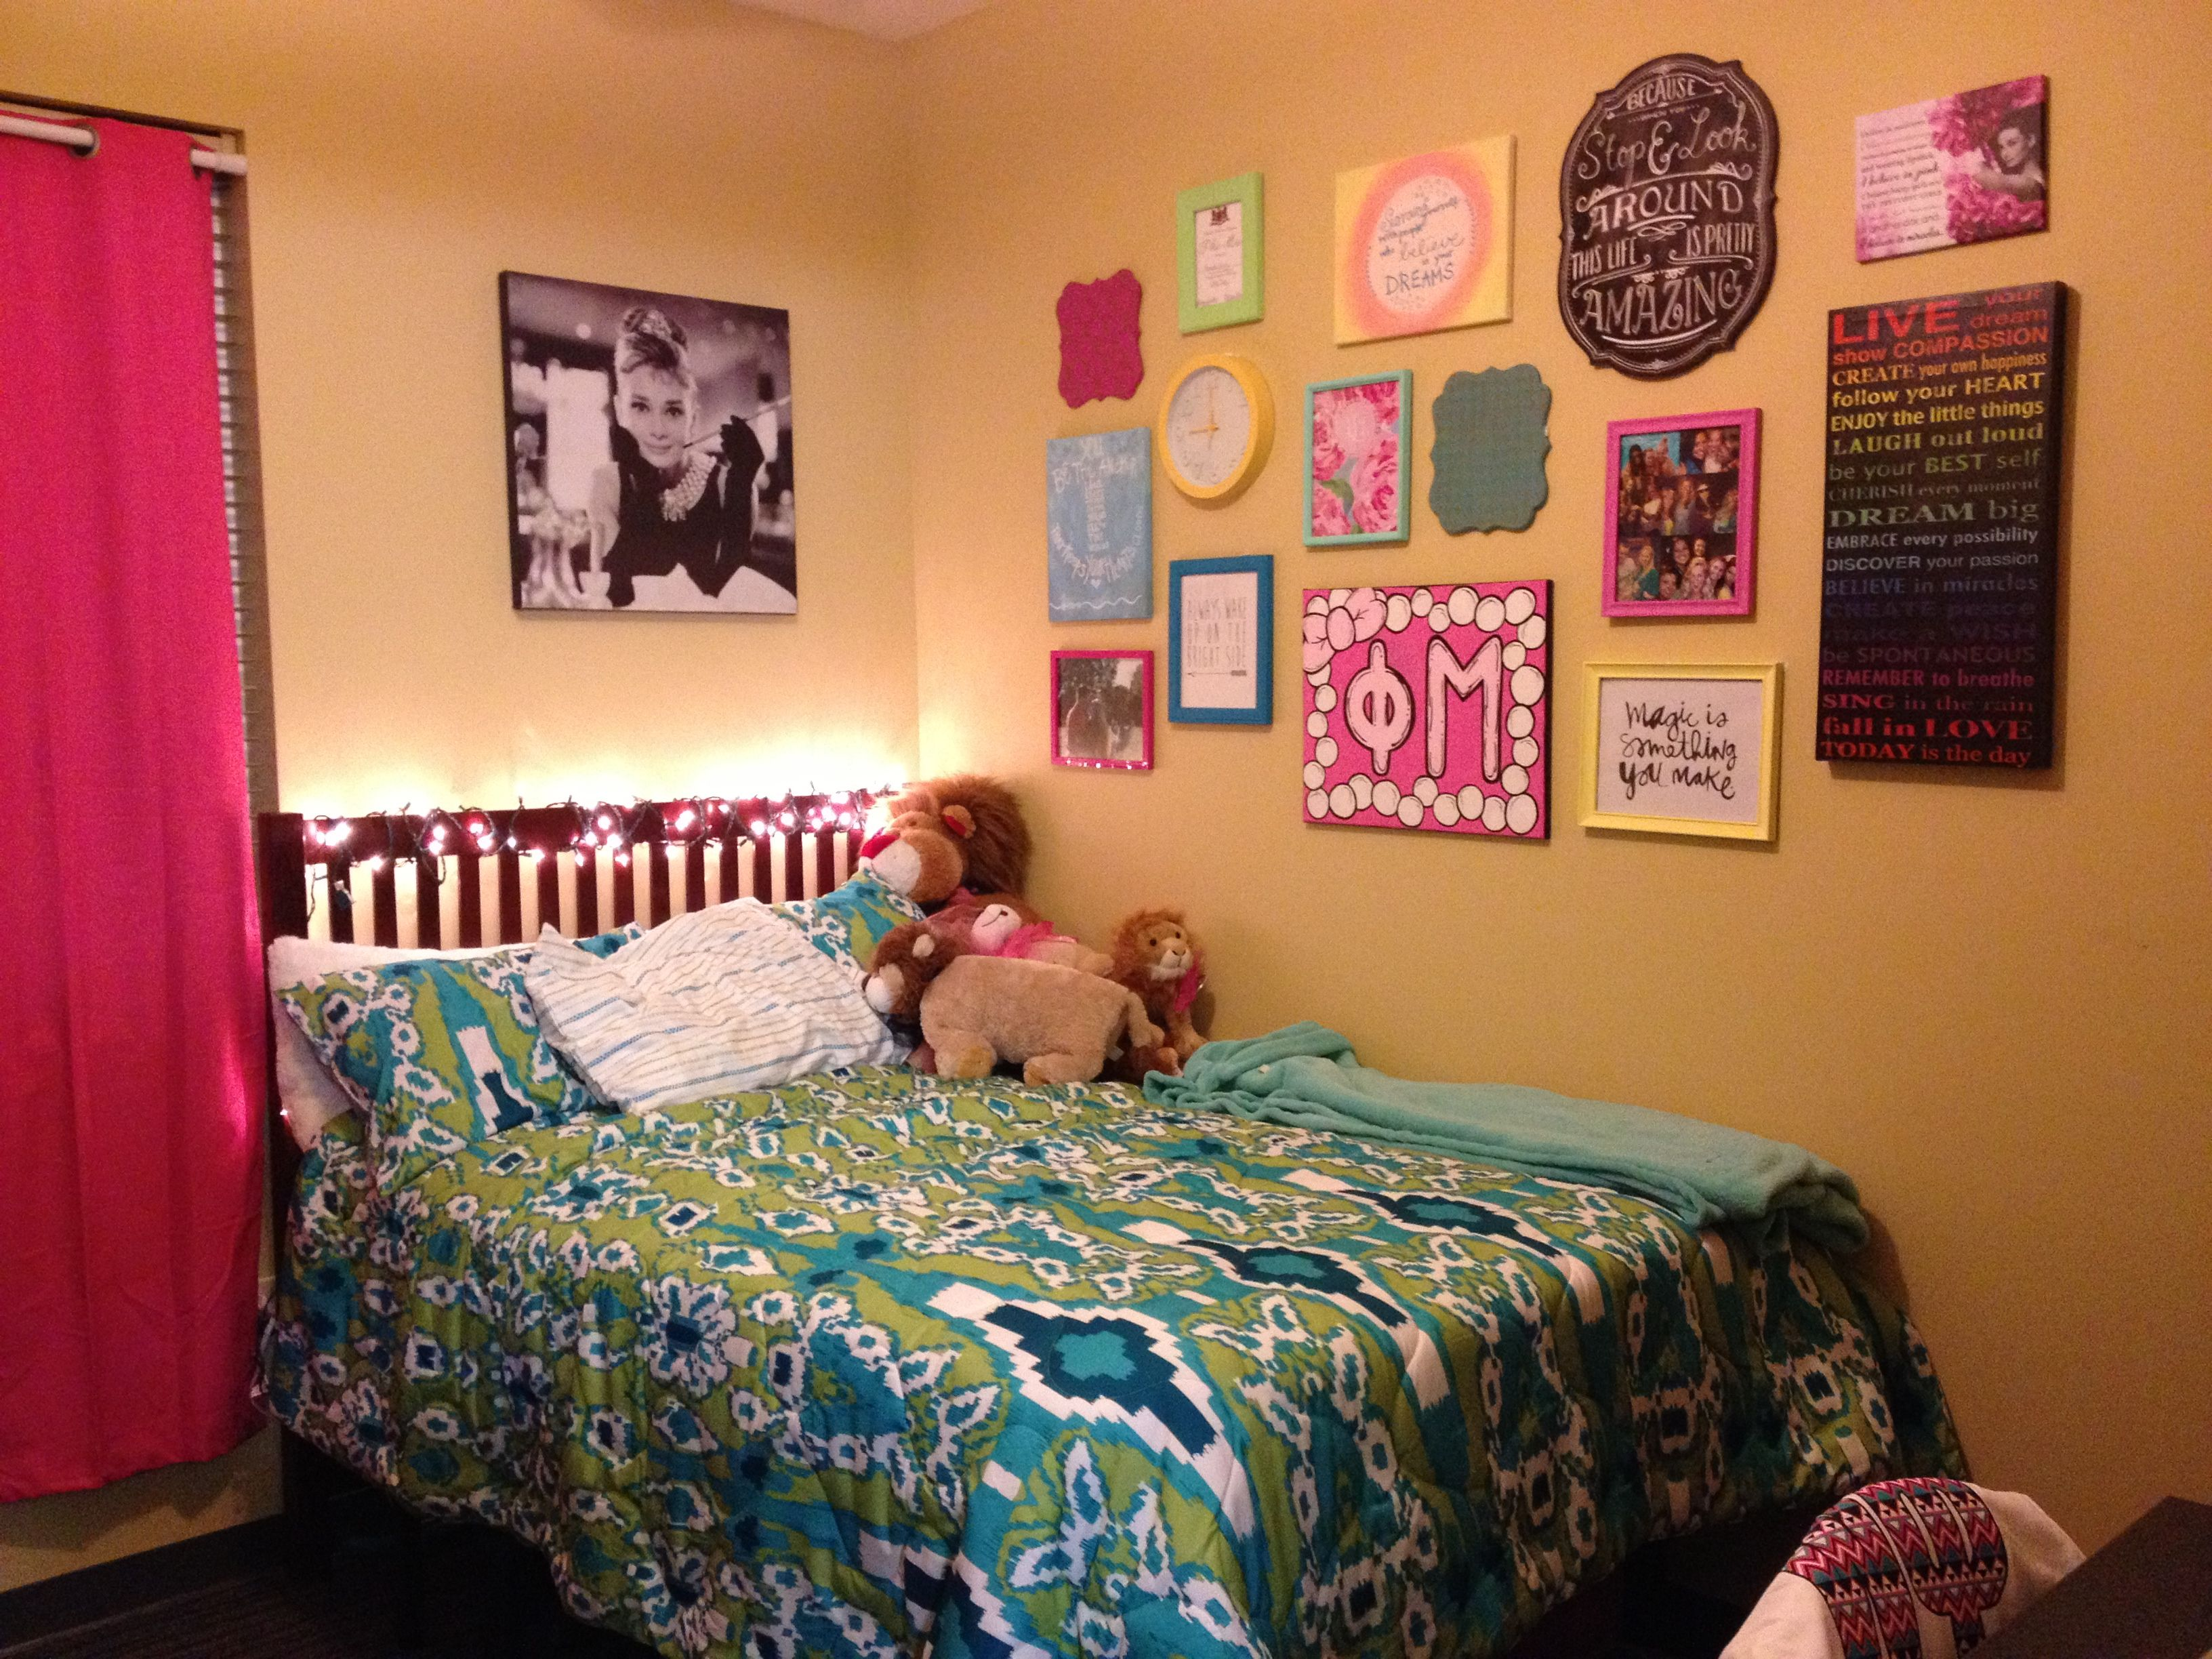 dorm room. wall decor! | {dorm living} | pinterest | dorm room